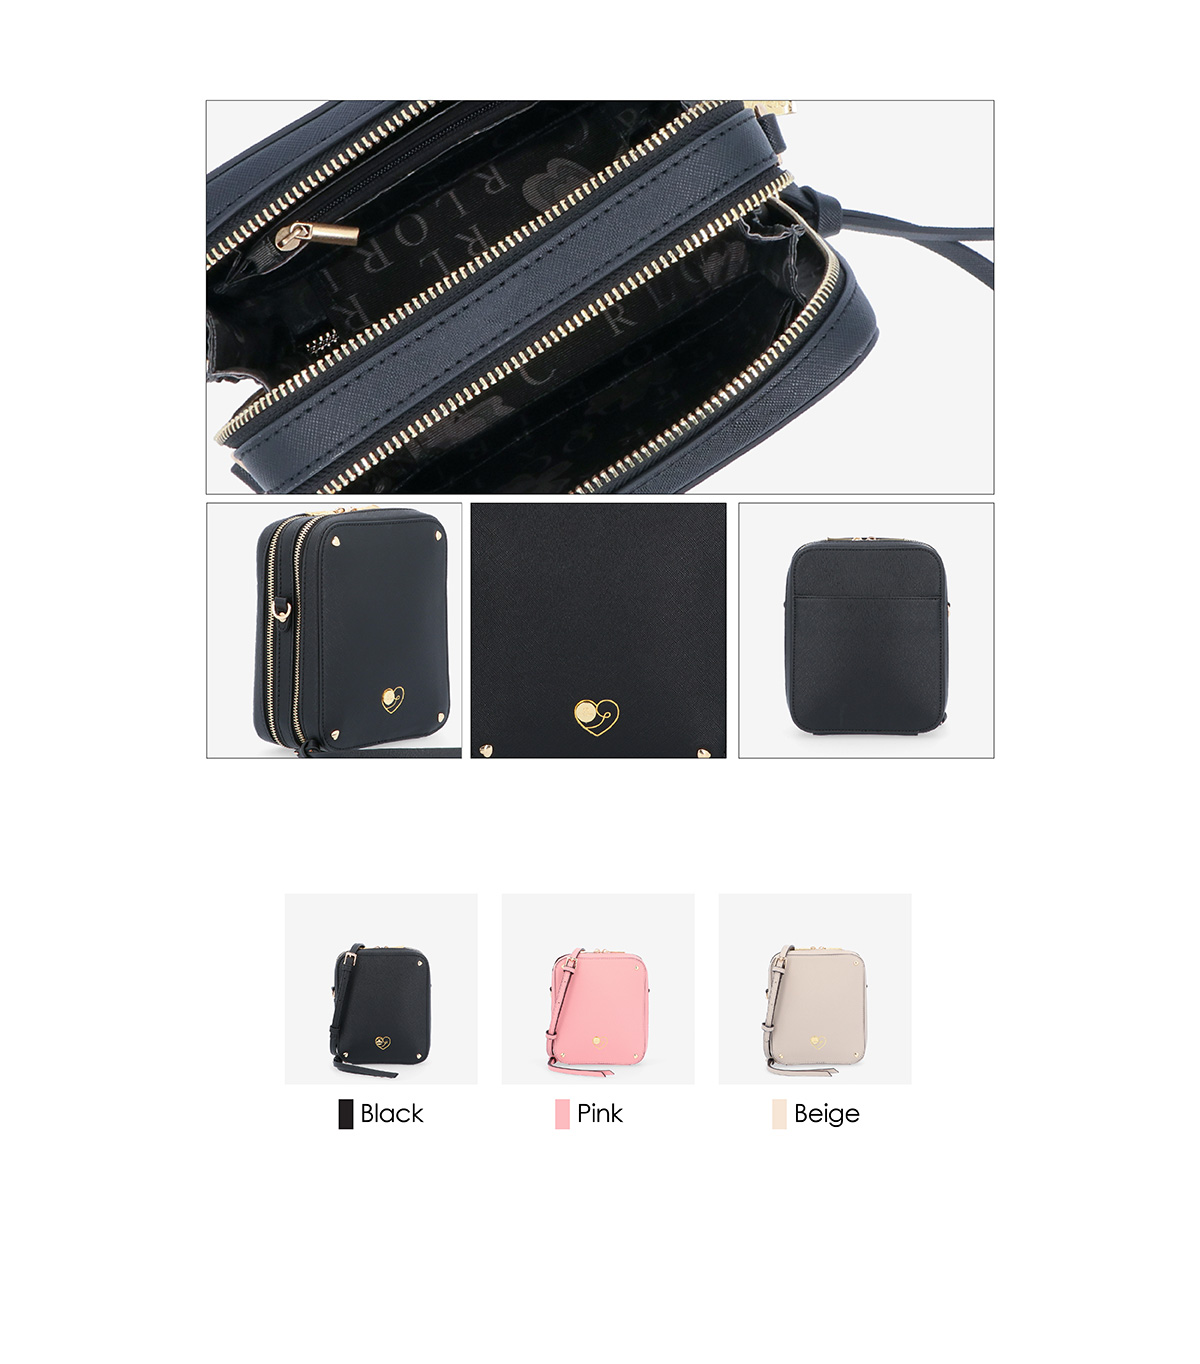 0305027J 001 03 - Wardrobe Sweetheart 2-fold Wallet